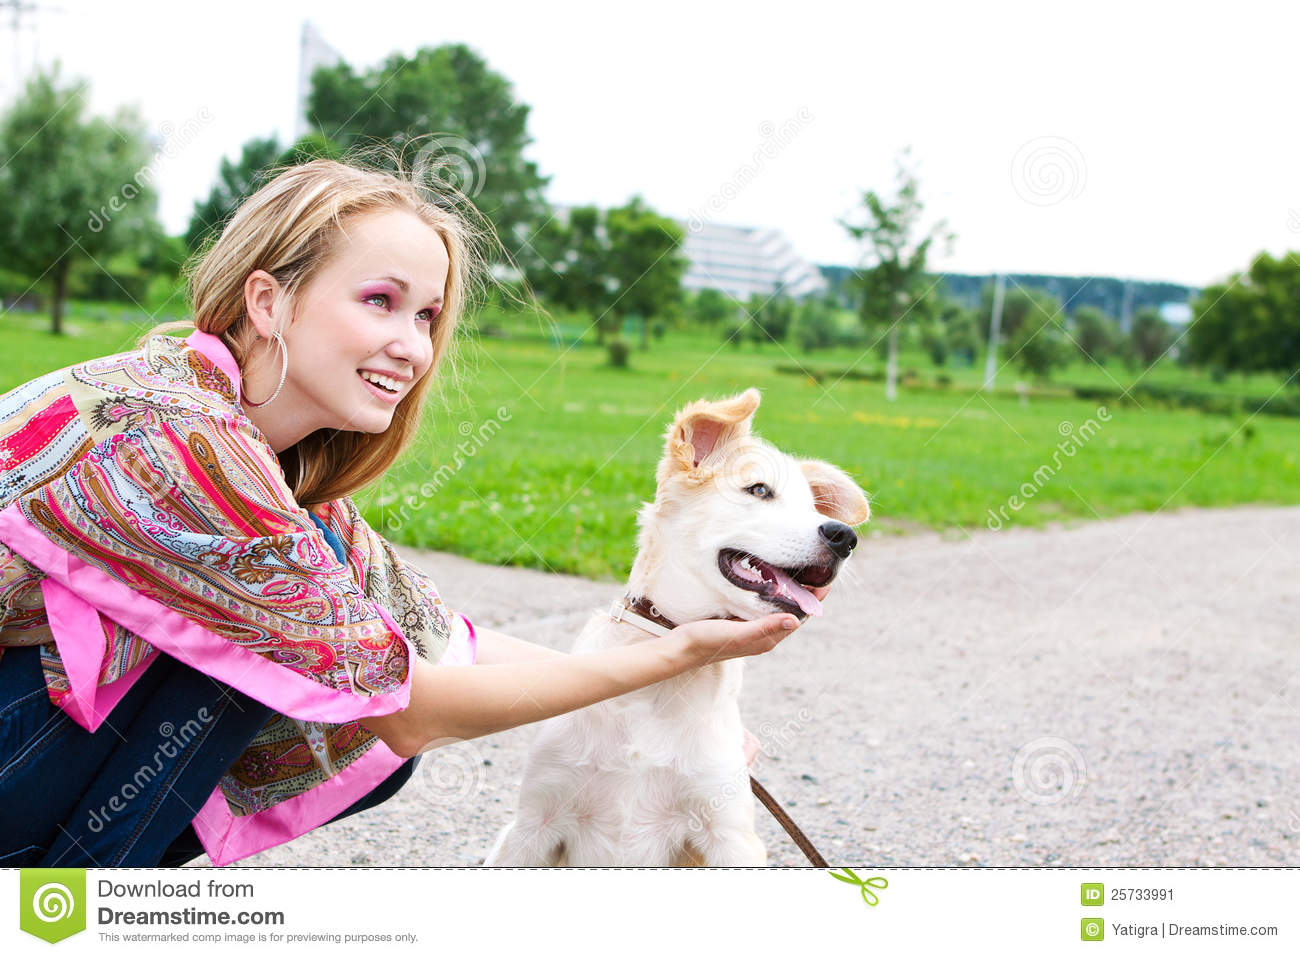 Young woman playing with puppy outdoor